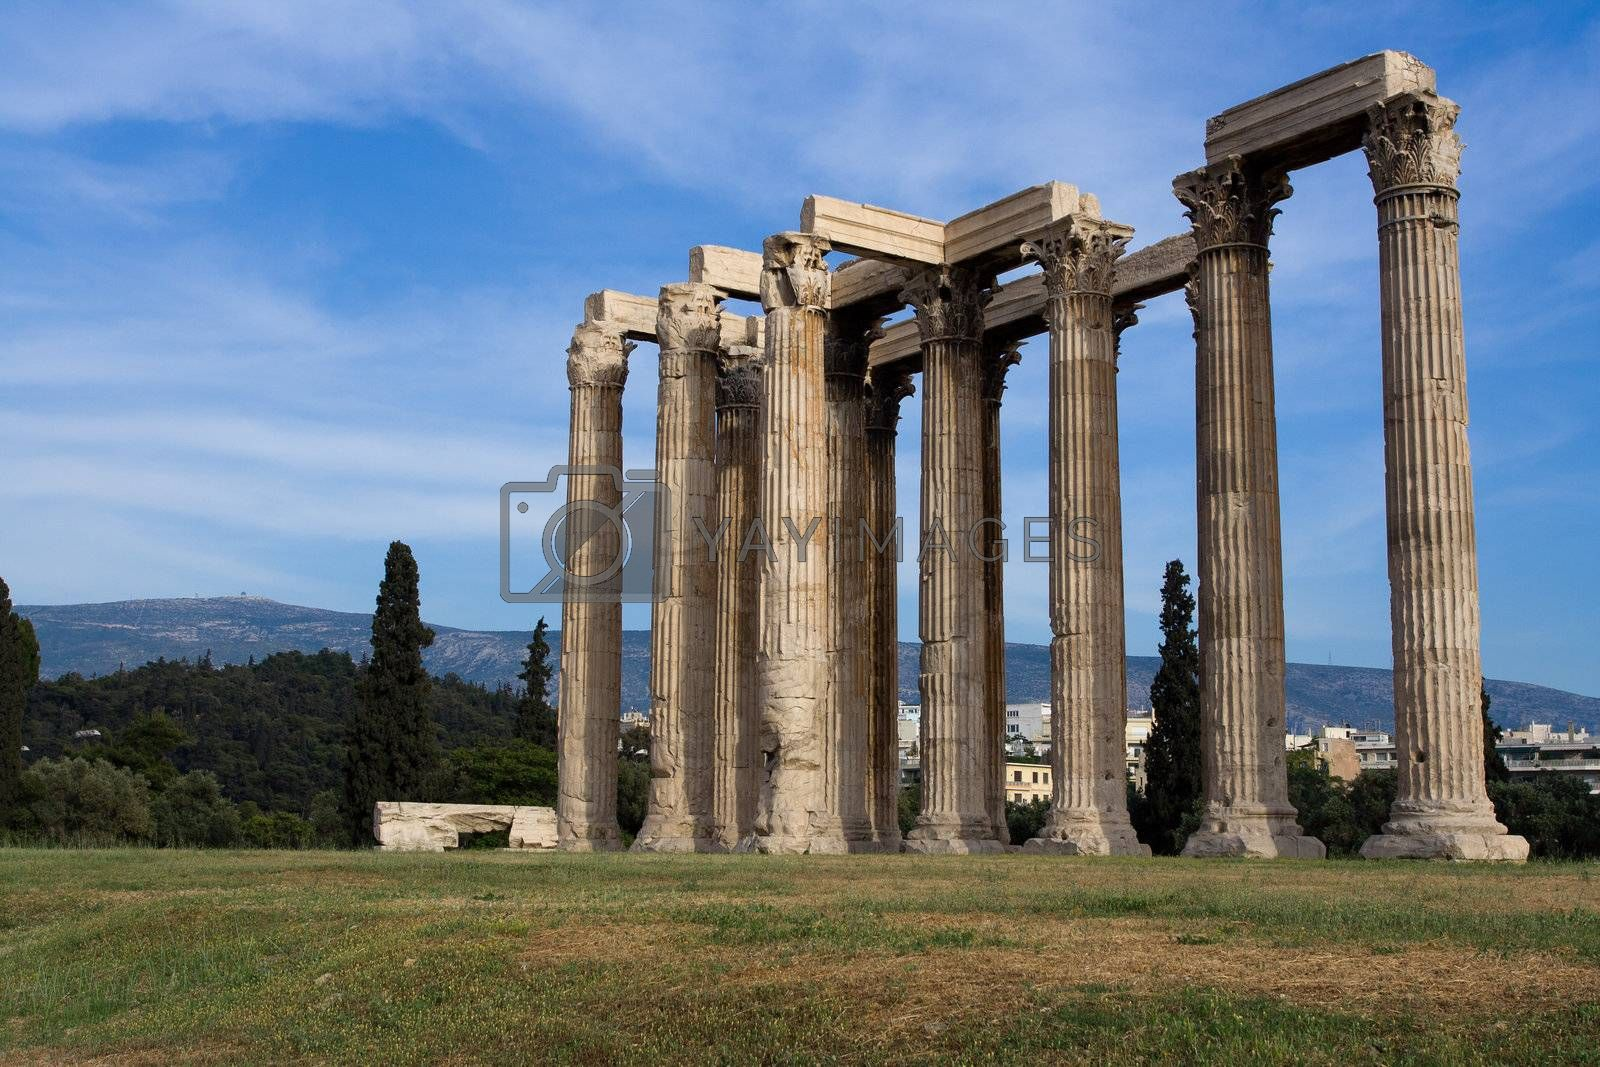 Close-up columns of Ancient Temple of Olympian Zeus in Athens Greece on blue sky background